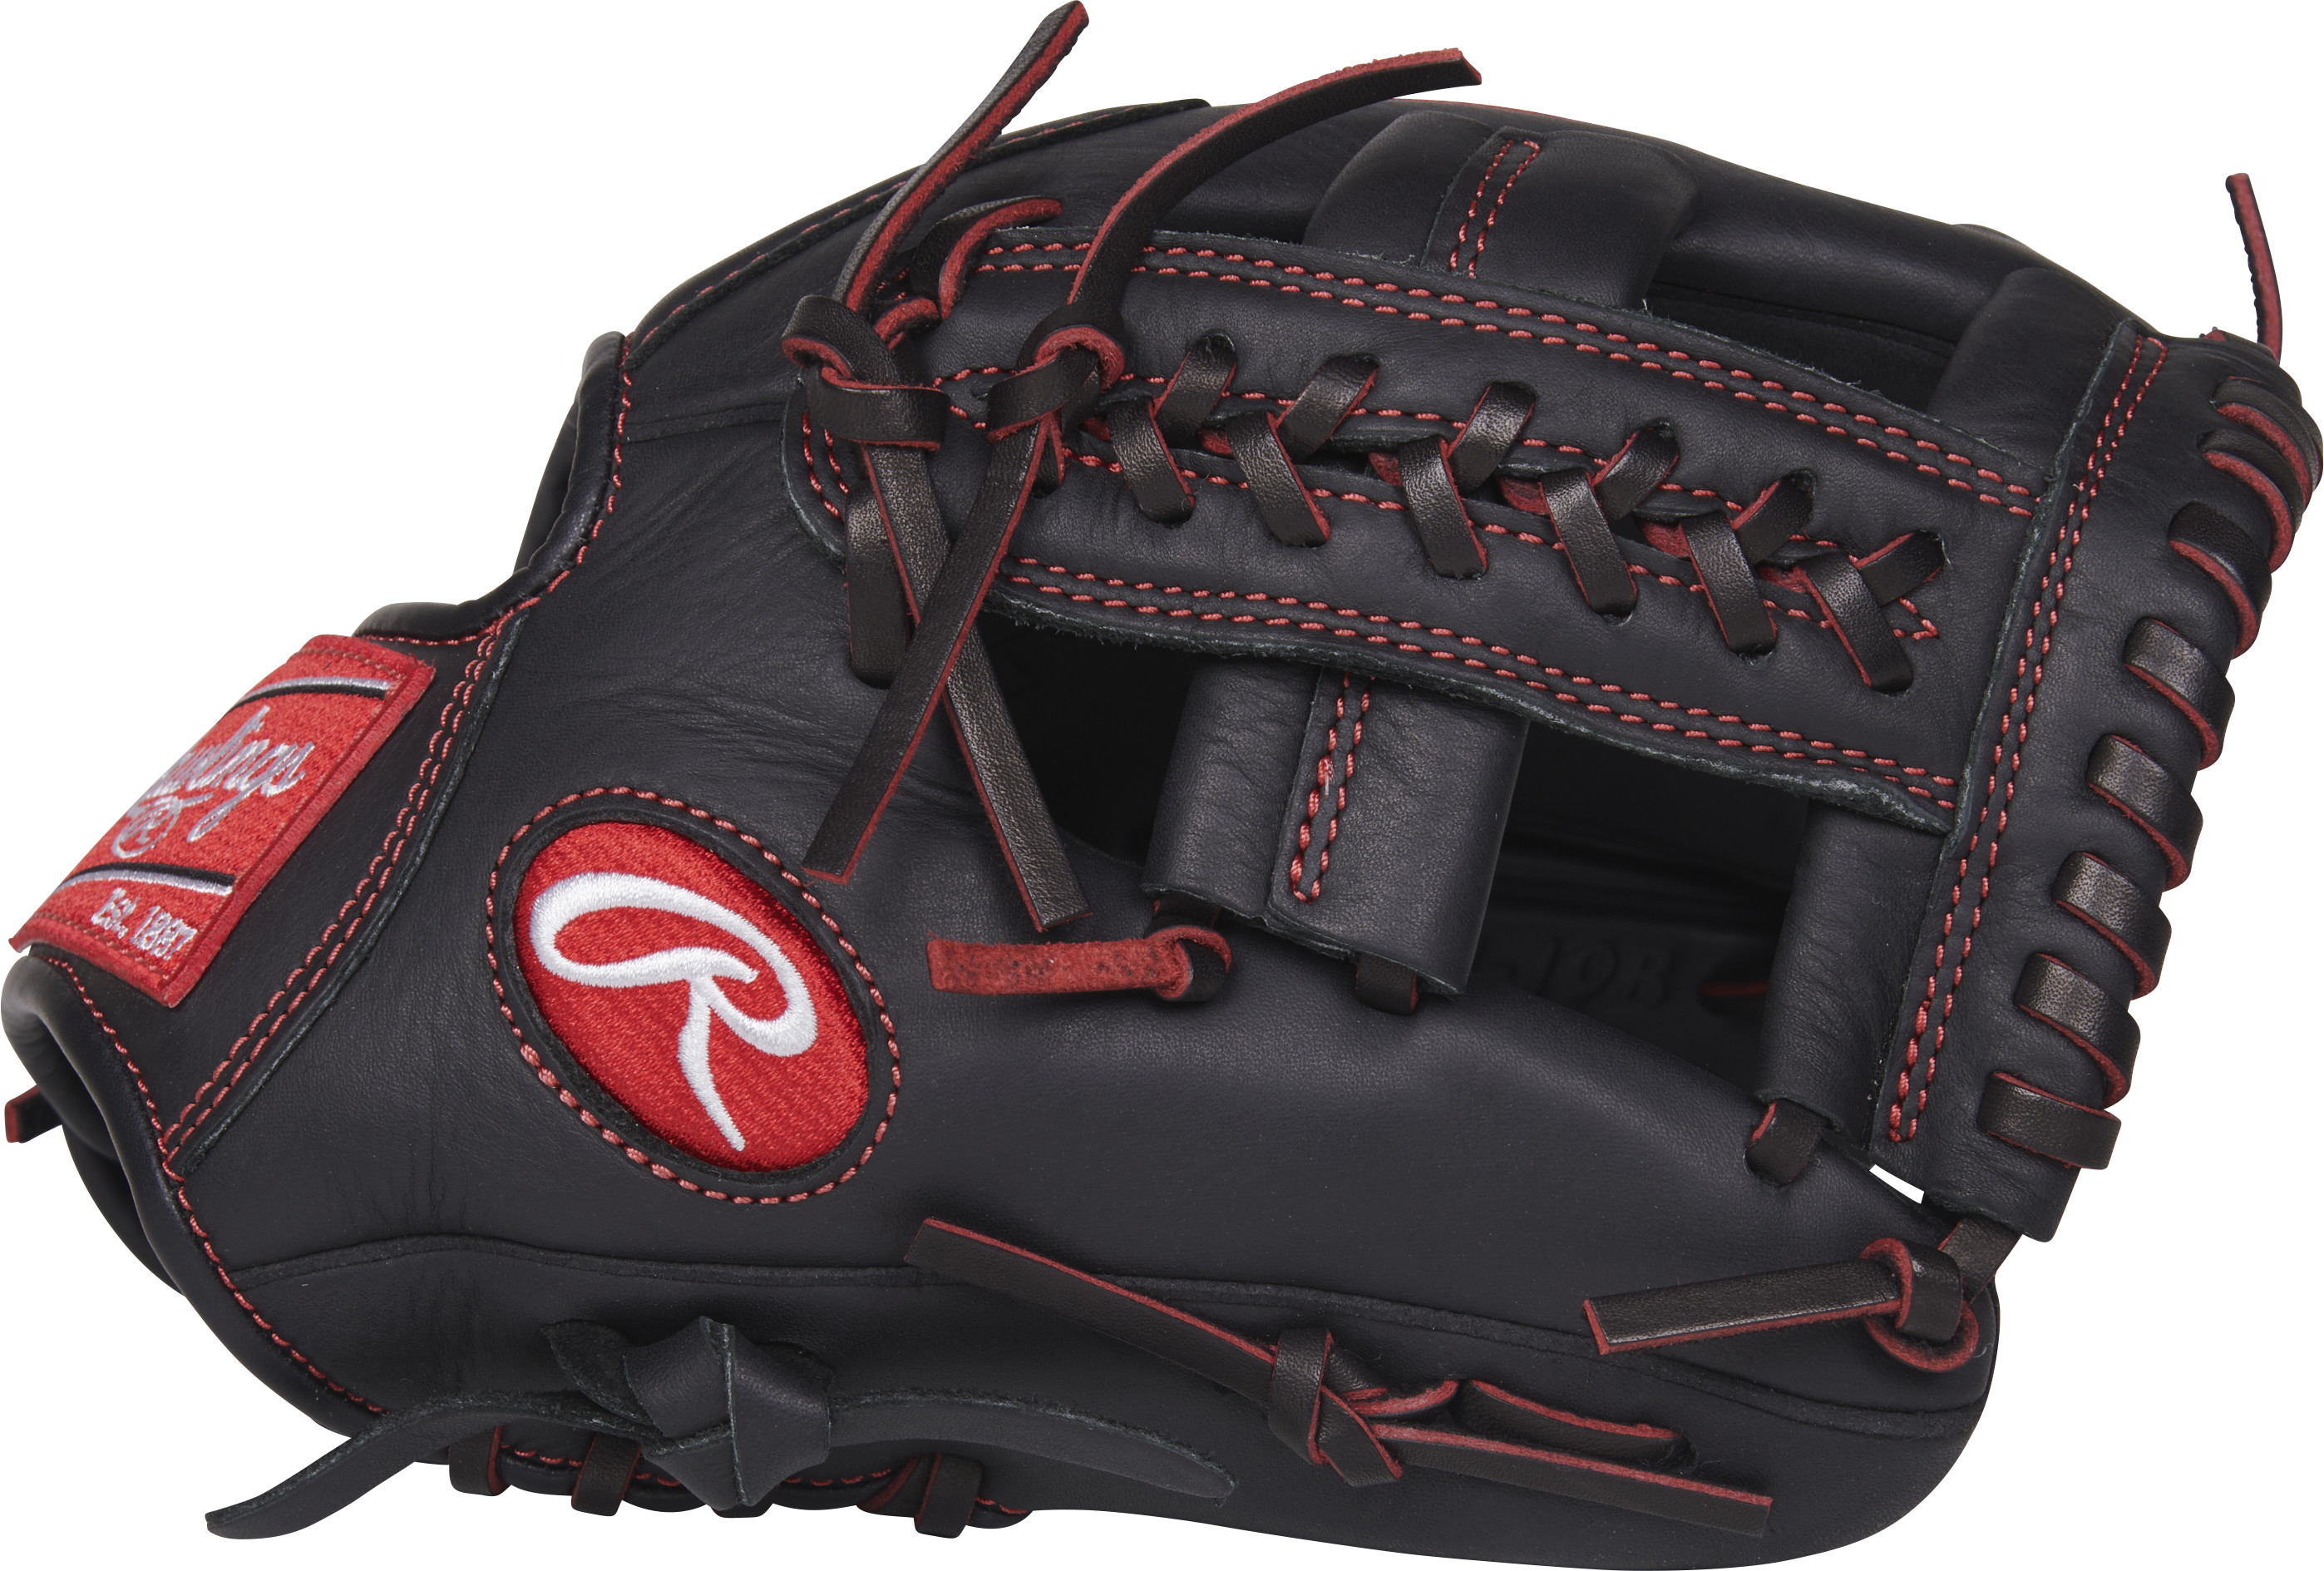 http://www.bestbatdeals.com/images/gloves/rawlings/R9YPT1-19B-3.jpg